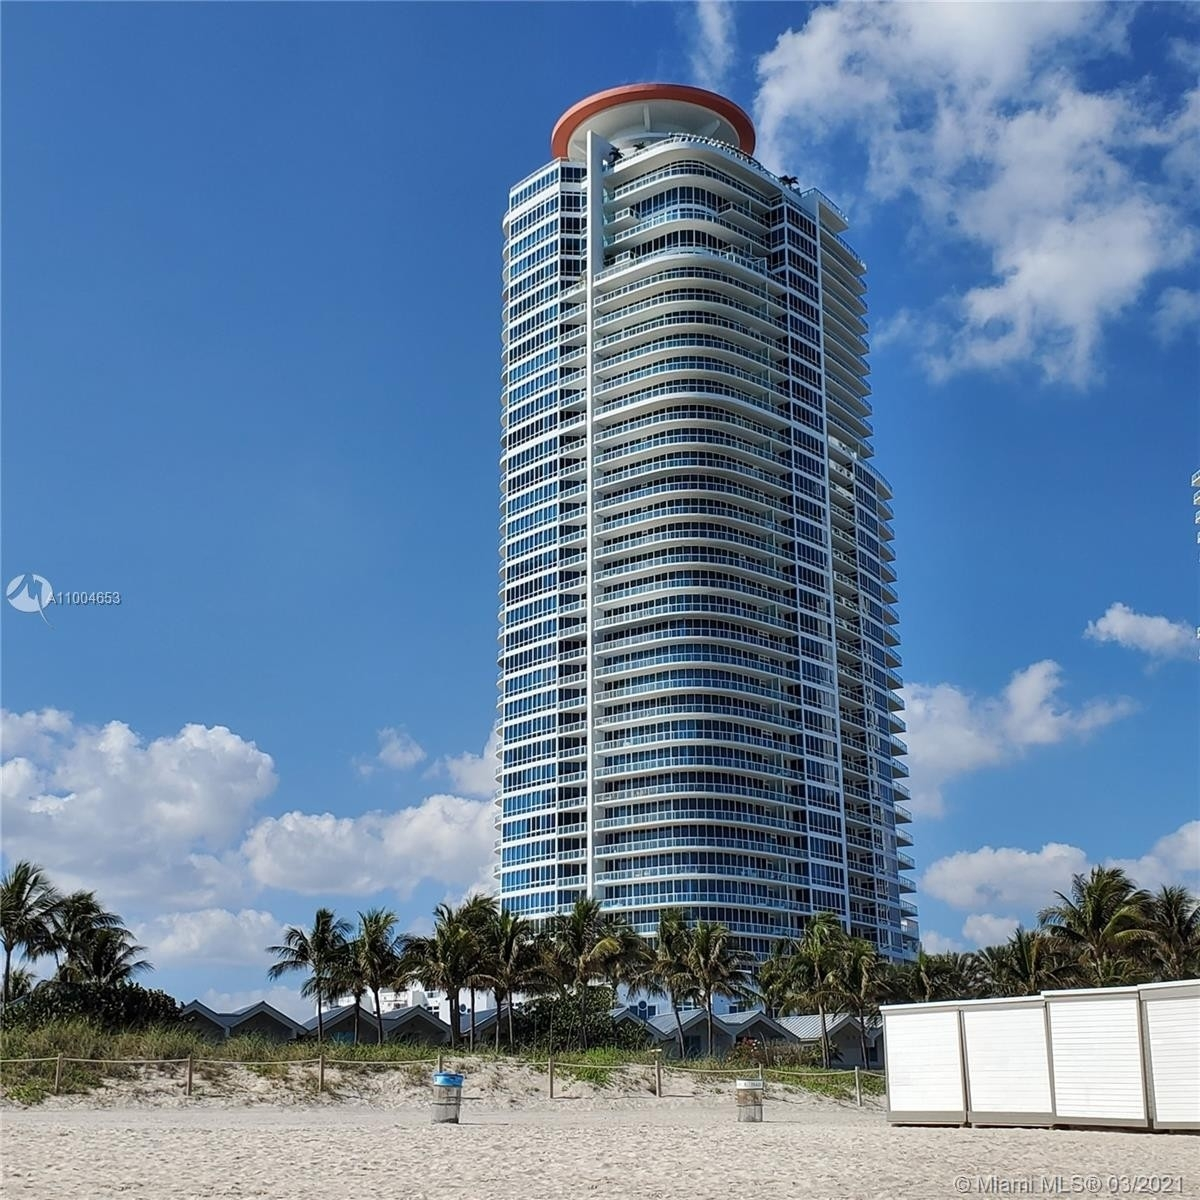 Condominium 為 特賣 在 100 S Pointe Dr , 3502/3503/ South Point, Miami Beach, FL 33139